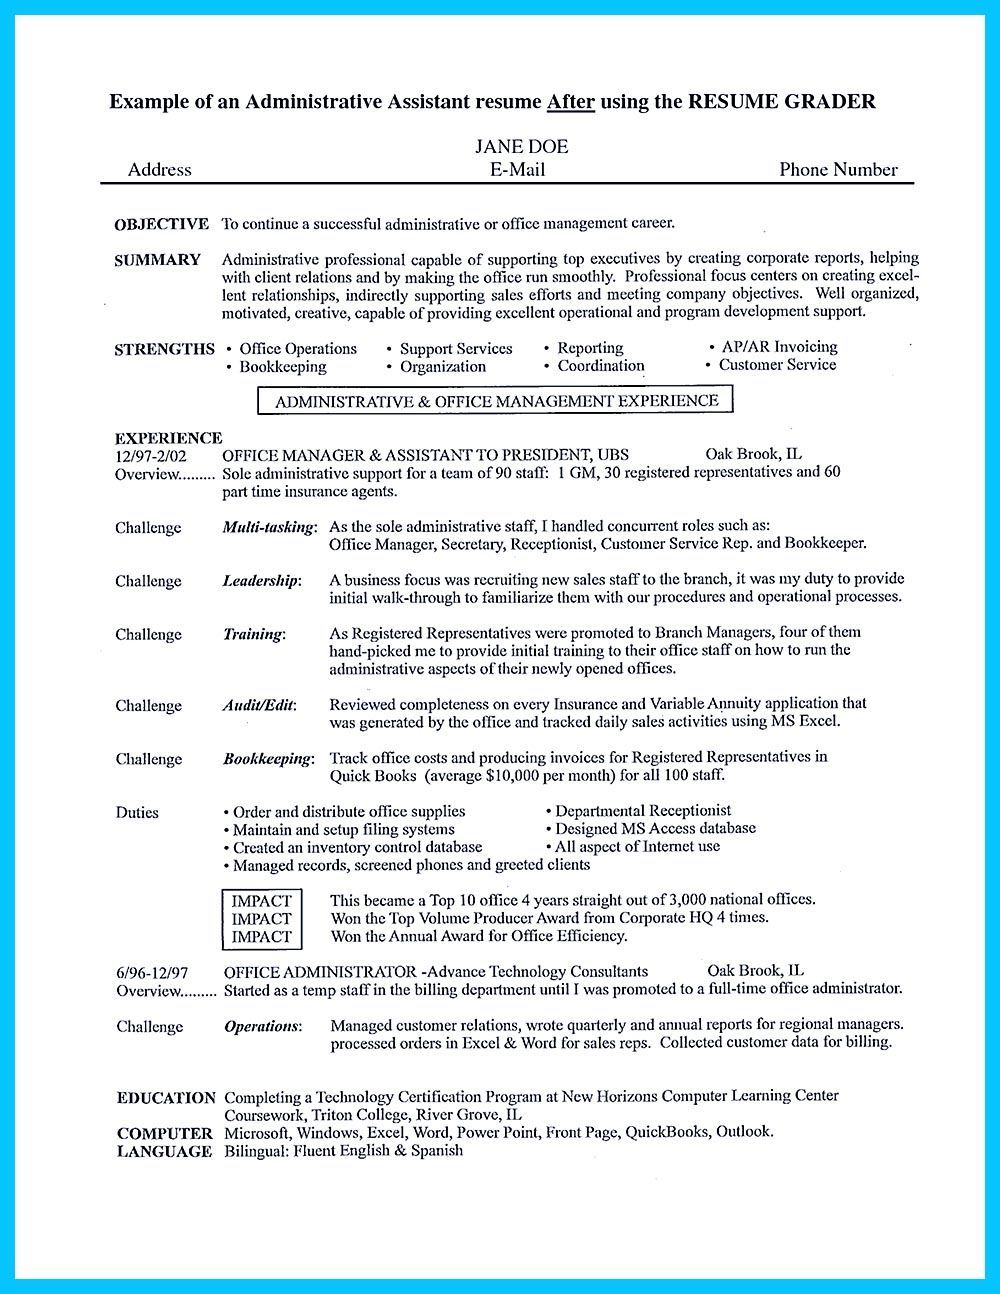 Entry Level Office Assistant Resume Unique In Writing Entry Level Administrative Assistant Resume You Need To .